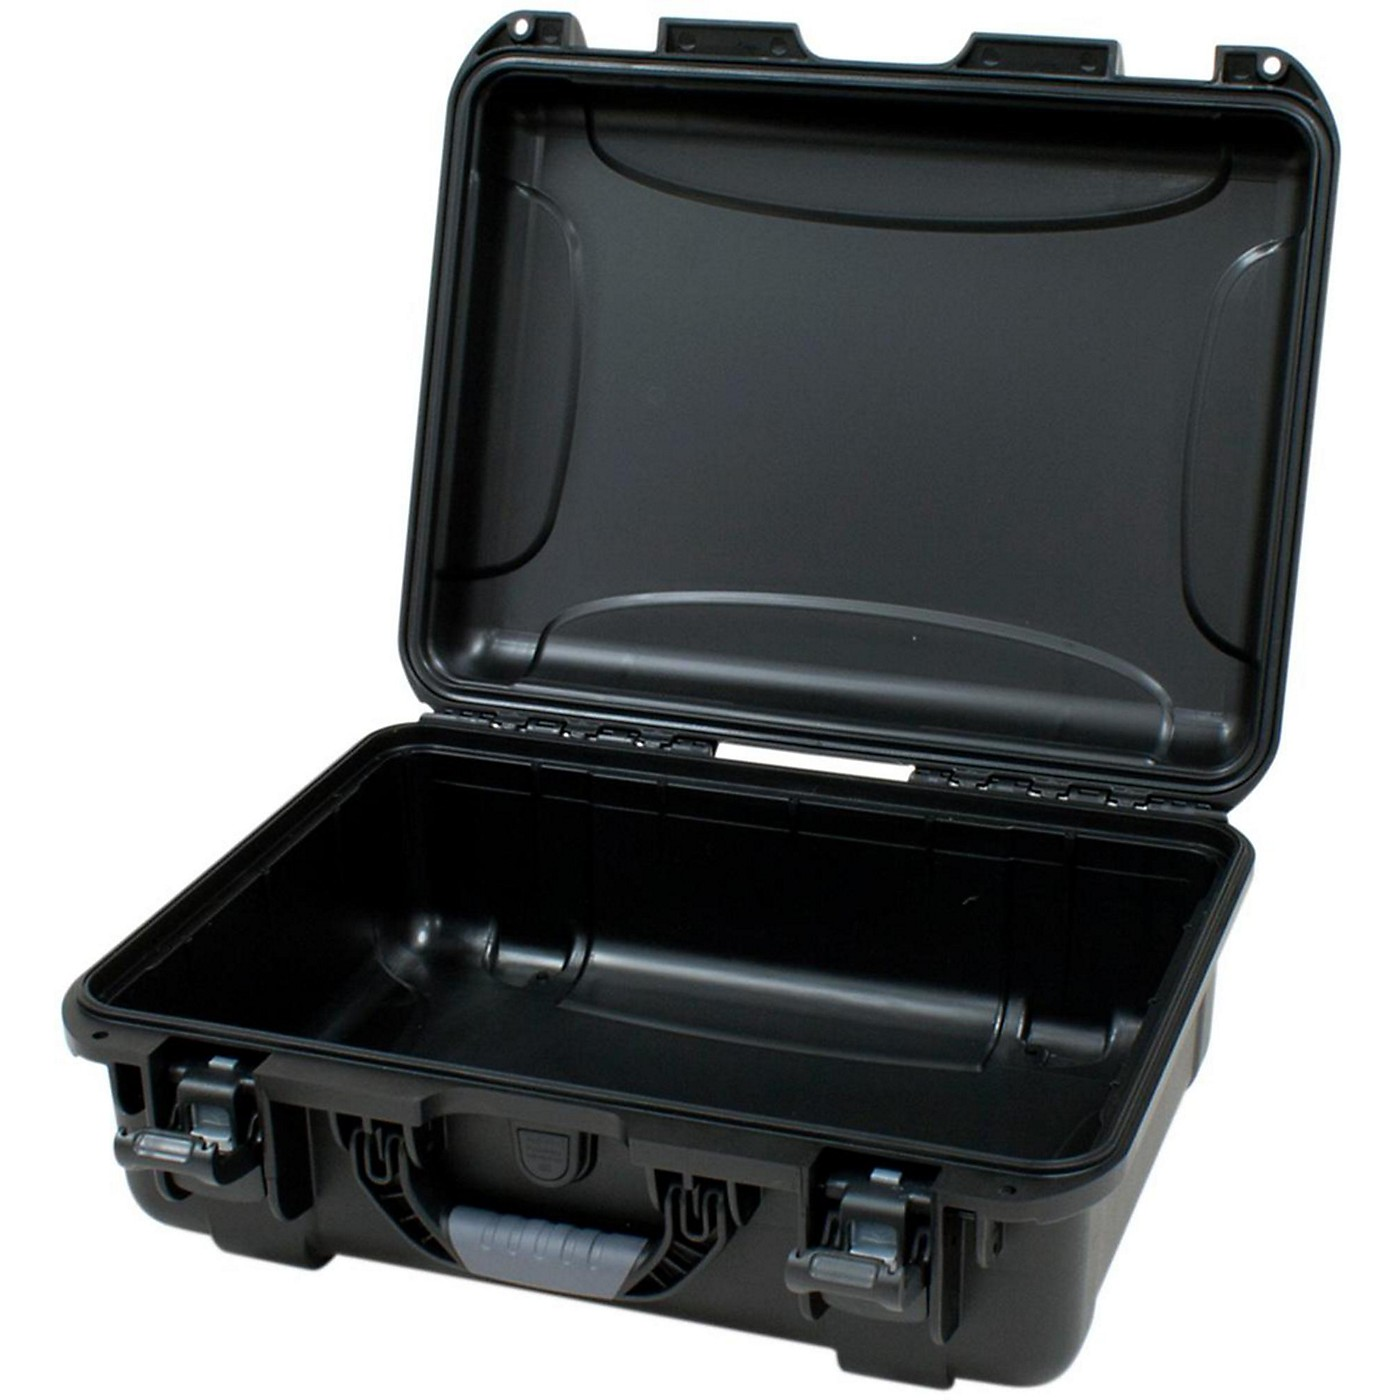 Gator GU-1813-06-WPNF Waterproof Injection Molded Case thumbnail